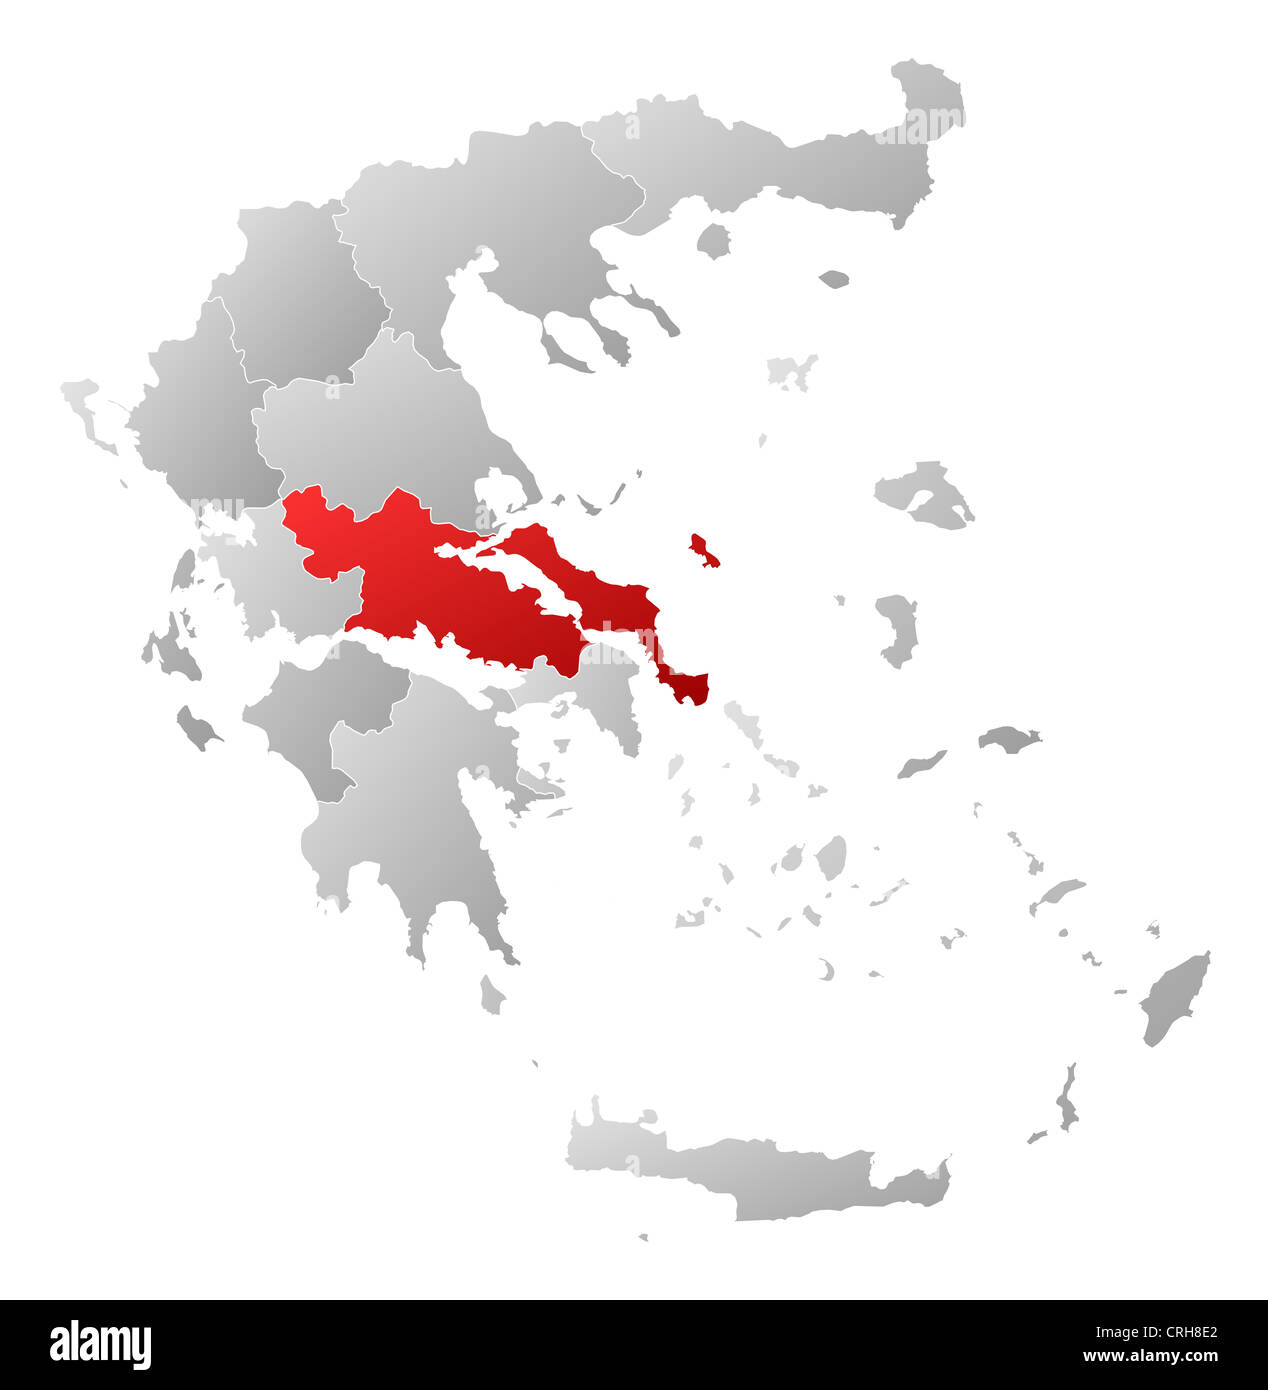 Where Is Greece On World Map.Political Map Of Greece With The Several States Where Central Greece